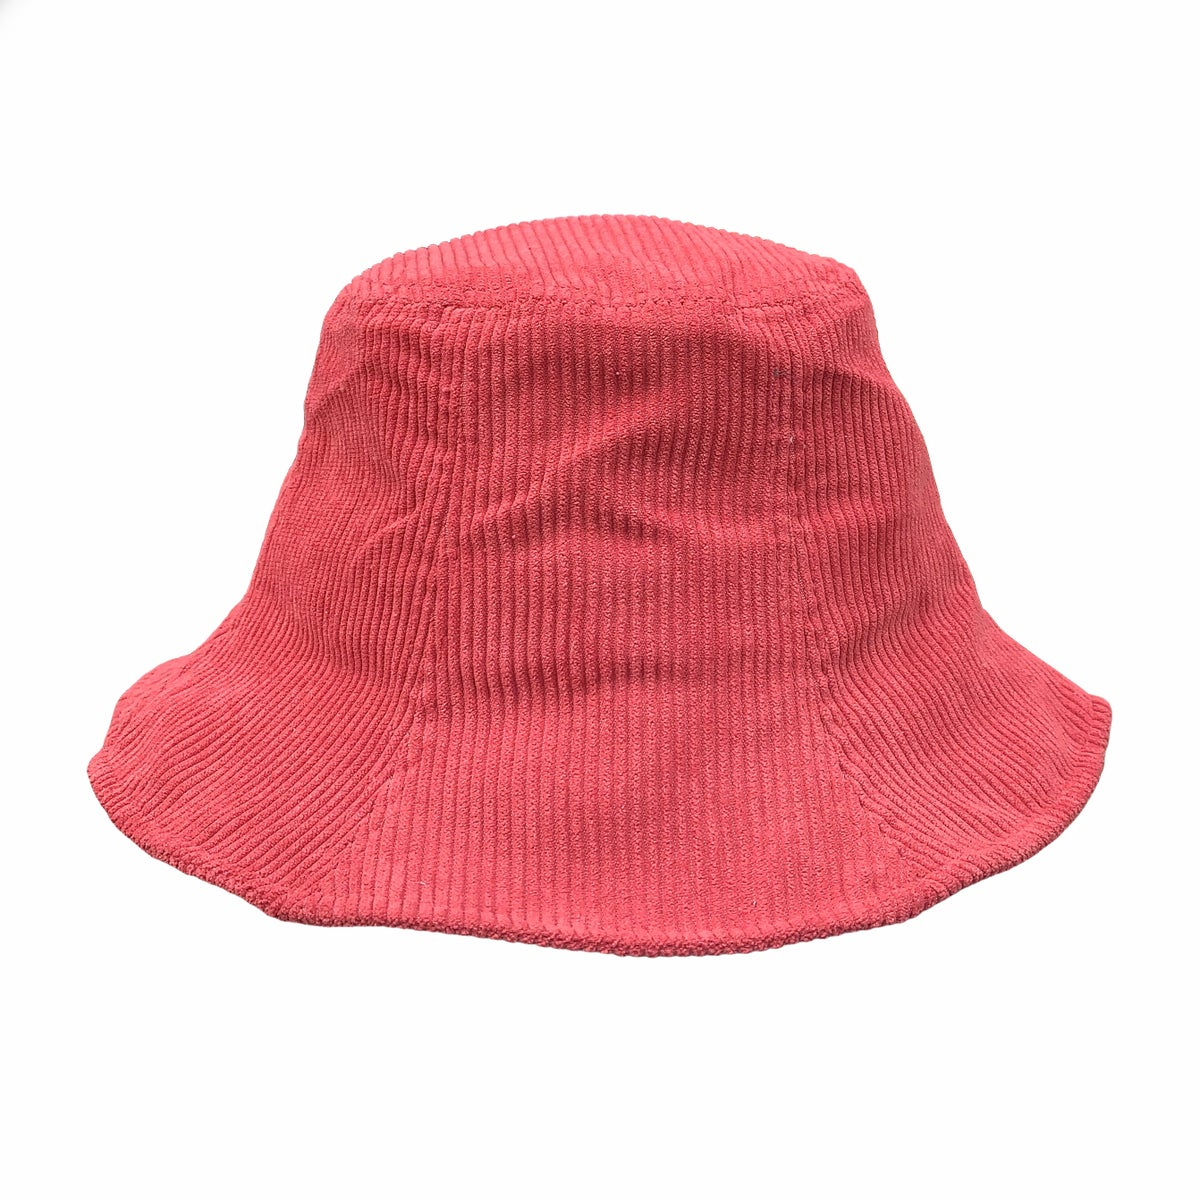 Image of Corduroy Bucket Hat. Coral